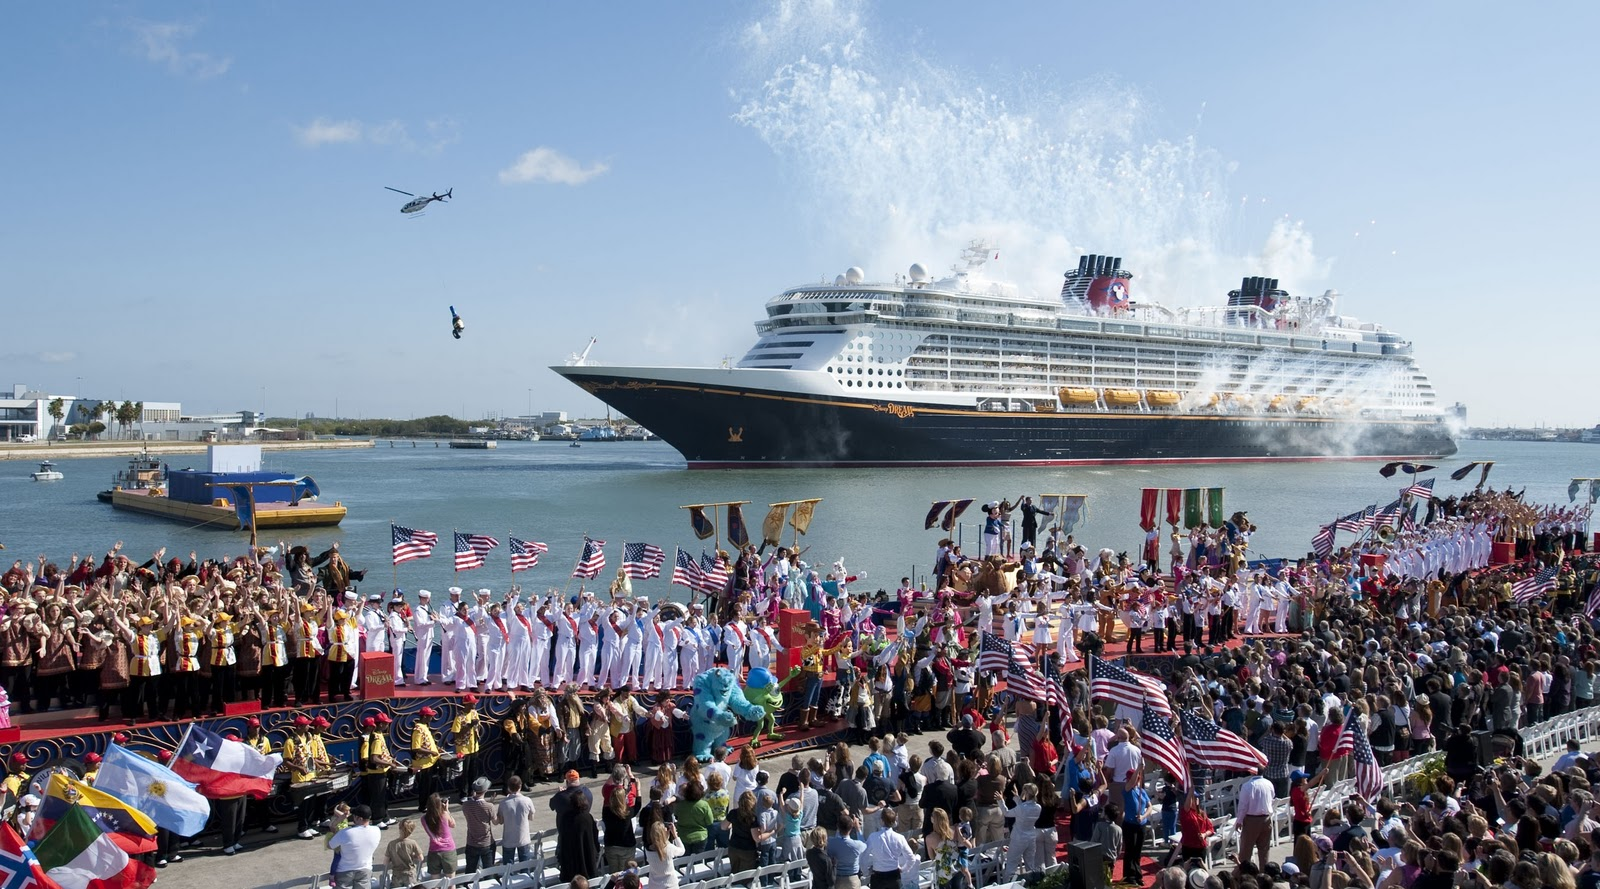 Disney Dream Christening Ceremony - Port Canaveral, FL